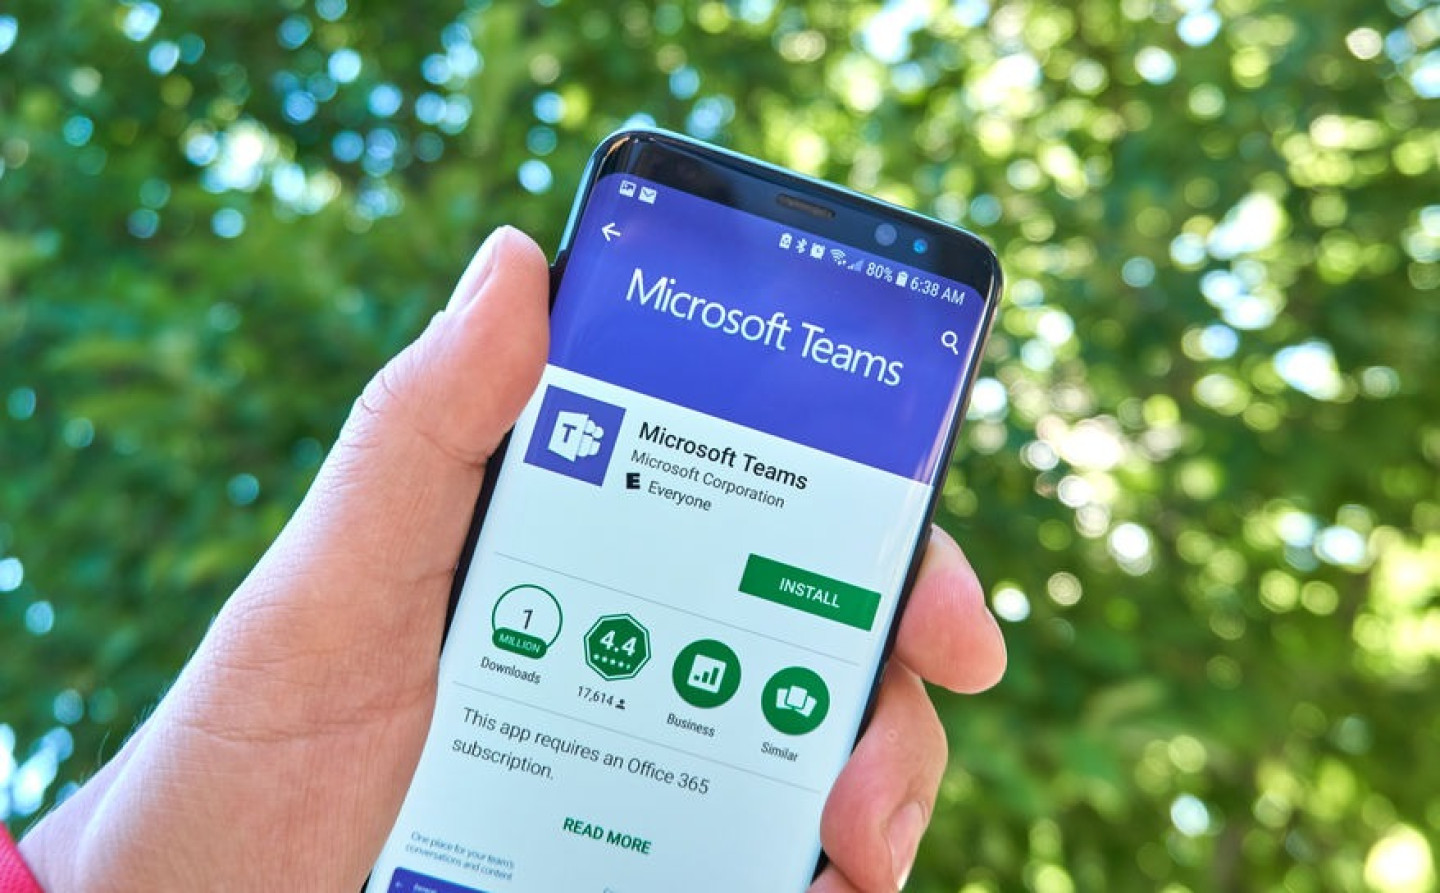 Microsoft Teams mobile app on Samsung s8.